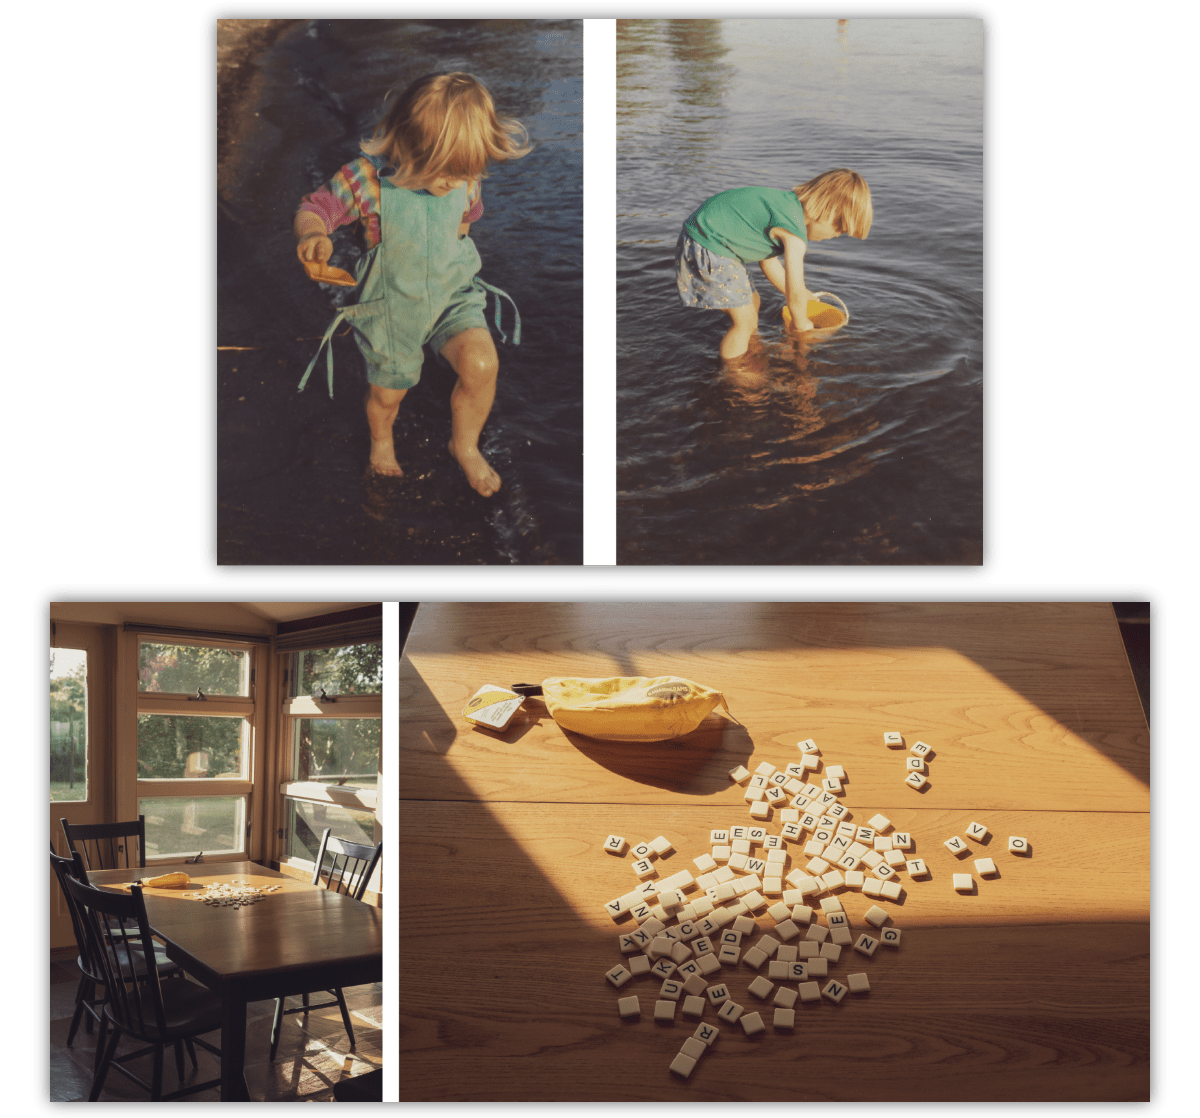 Two sets of photos, the first a pair of film photos of children in a lake, the second a pair of. photos showing a board game on a table